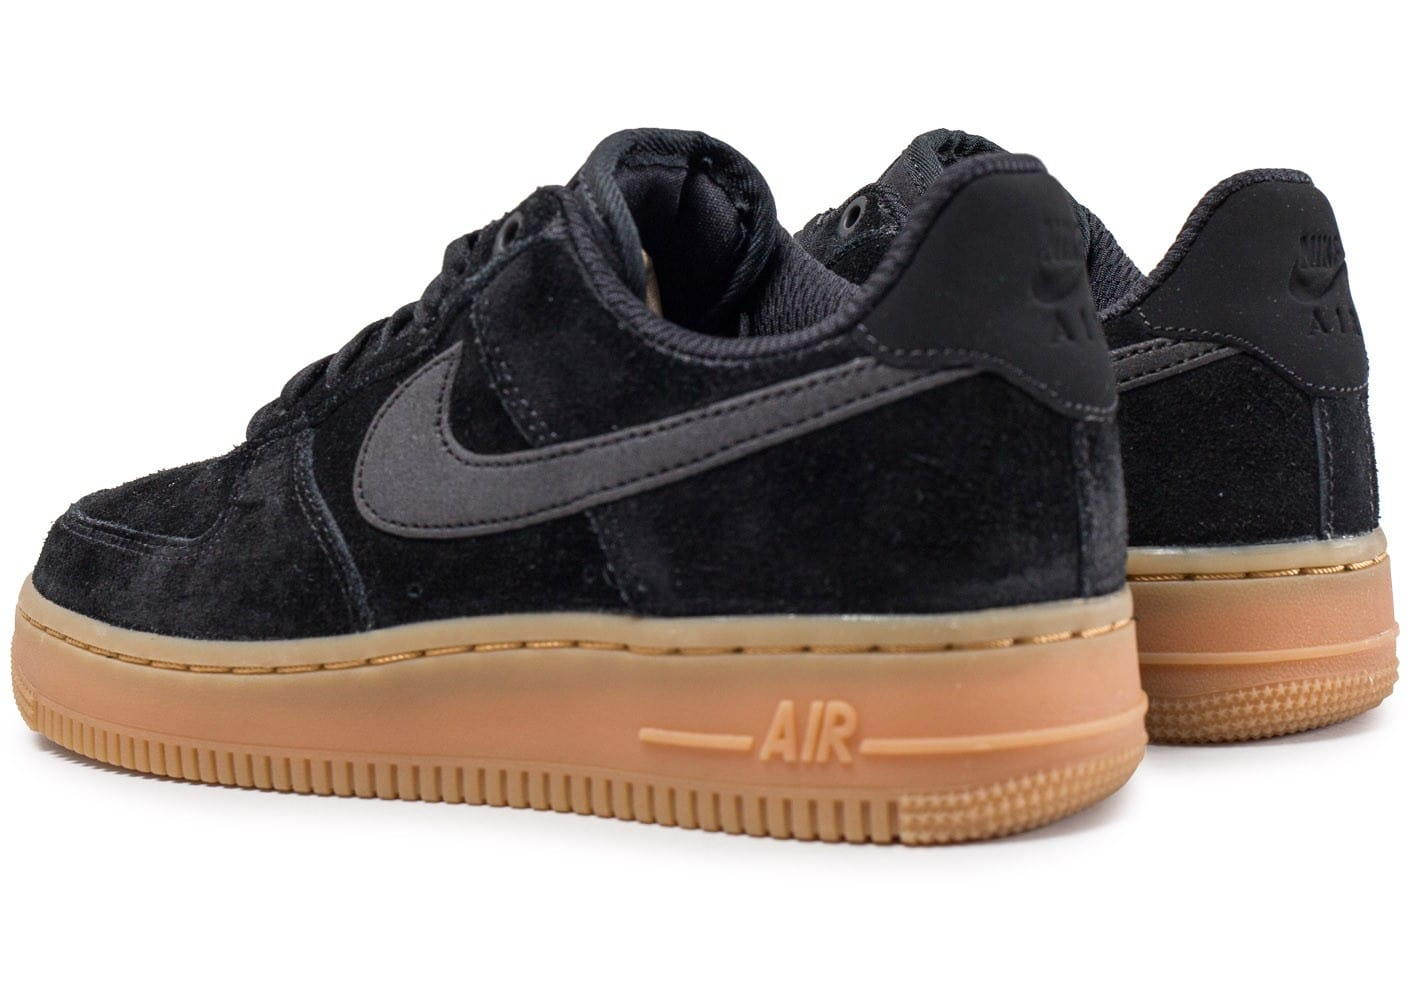 nike air force 1 low 07 se w suede noire chaussures black friday chausport. Black Bedroom Furniture Sets. Home Design Ideas